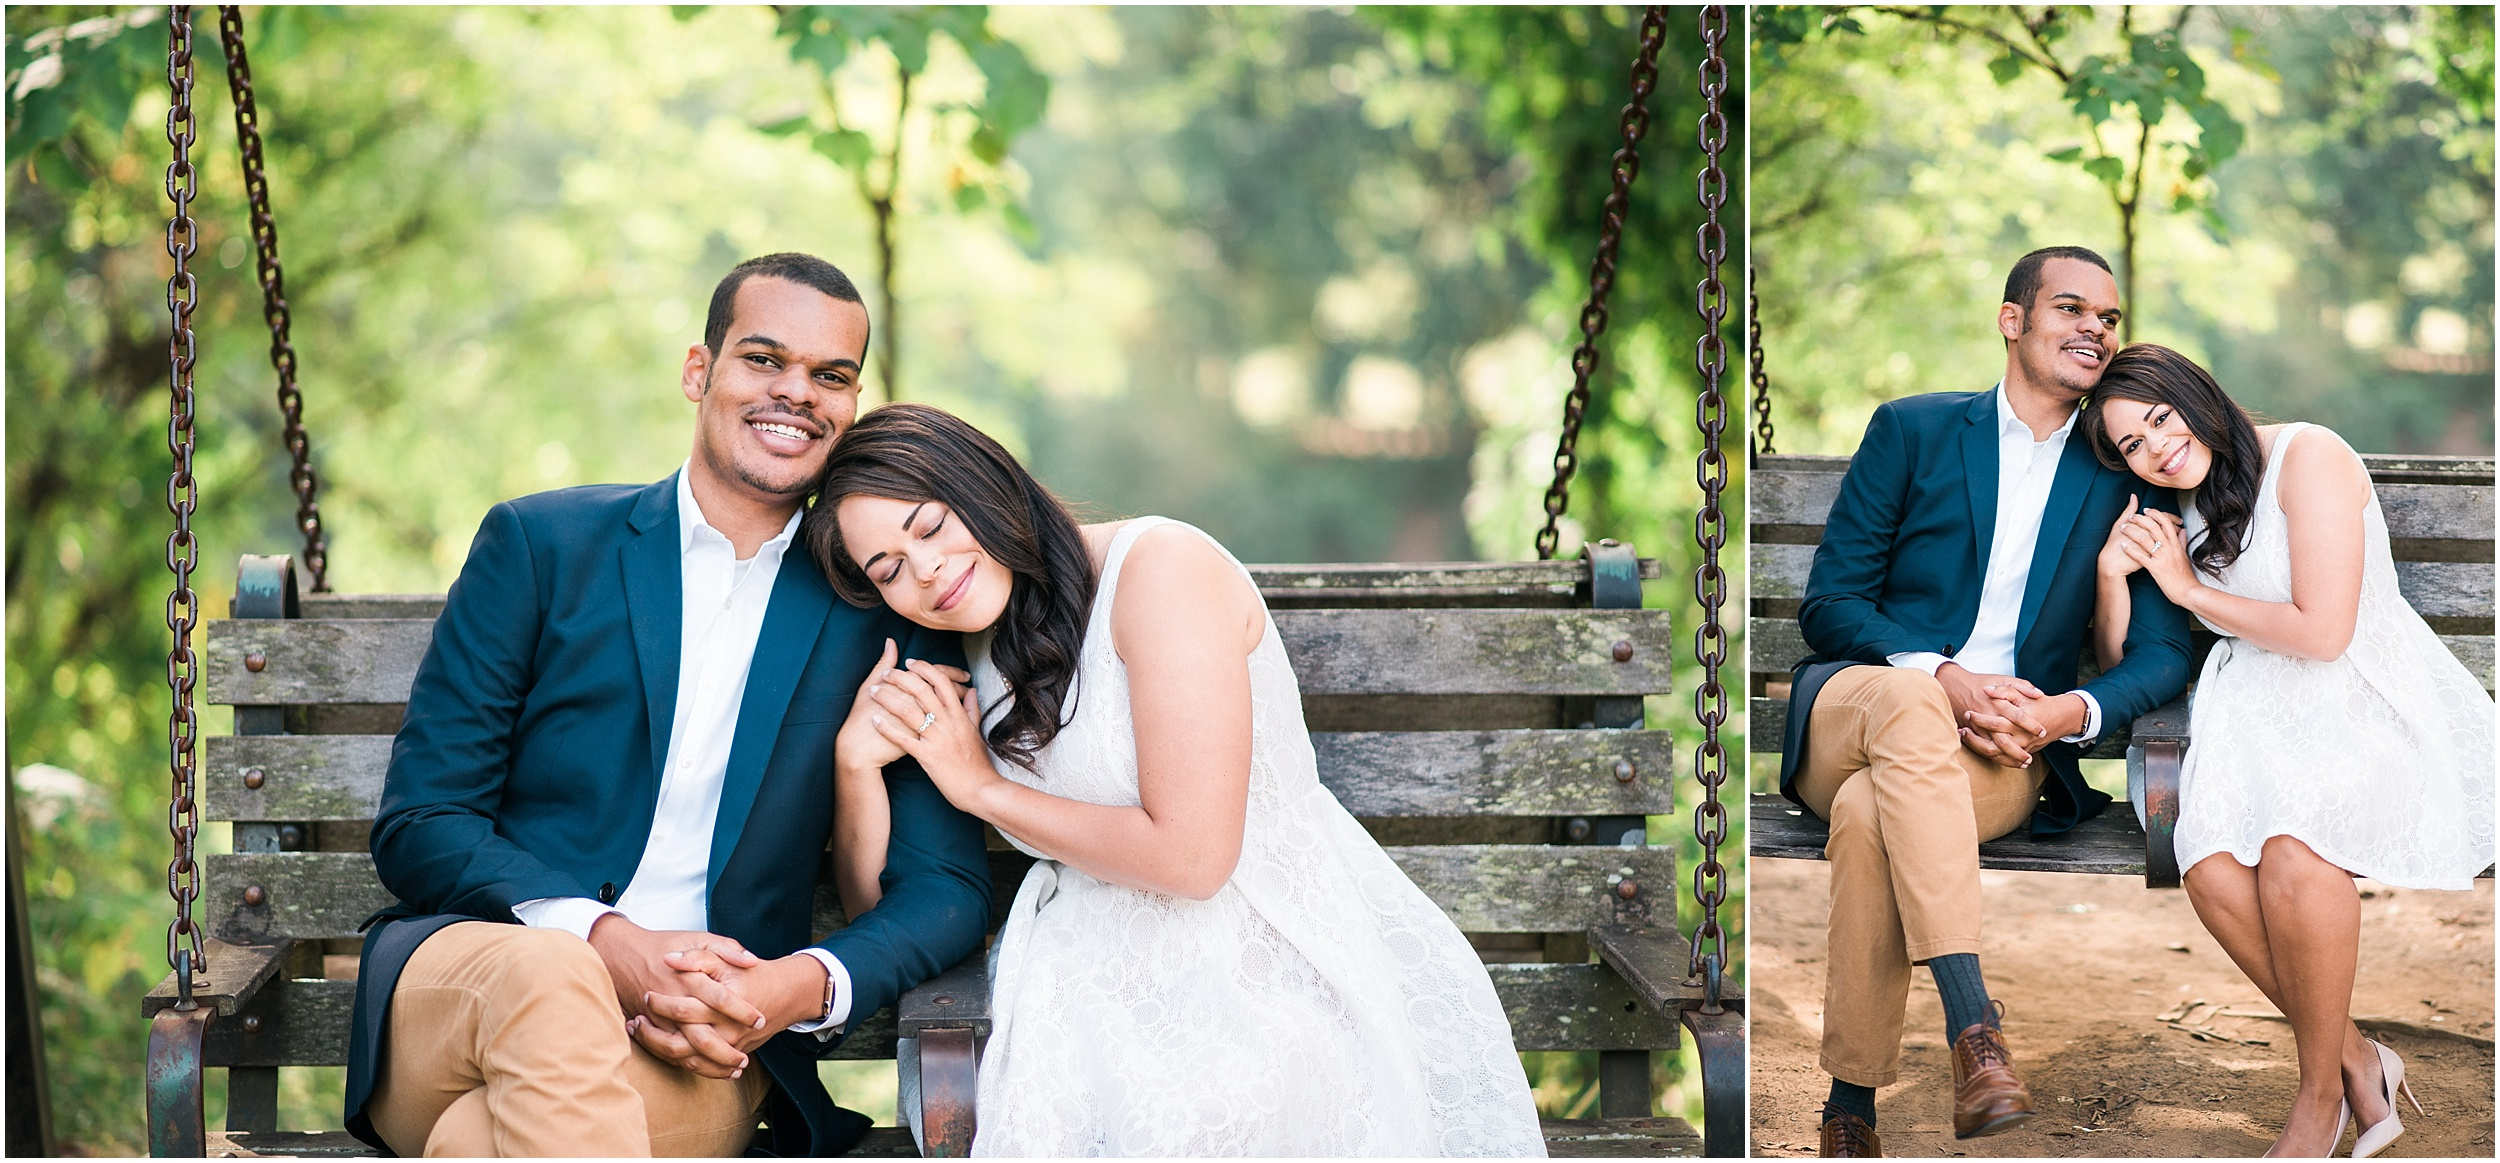 Tallahassee Florida Wedding, Matt and Lindsey Engagement Session at Piedmont Park, Atlanta Georgia_0019.jpg